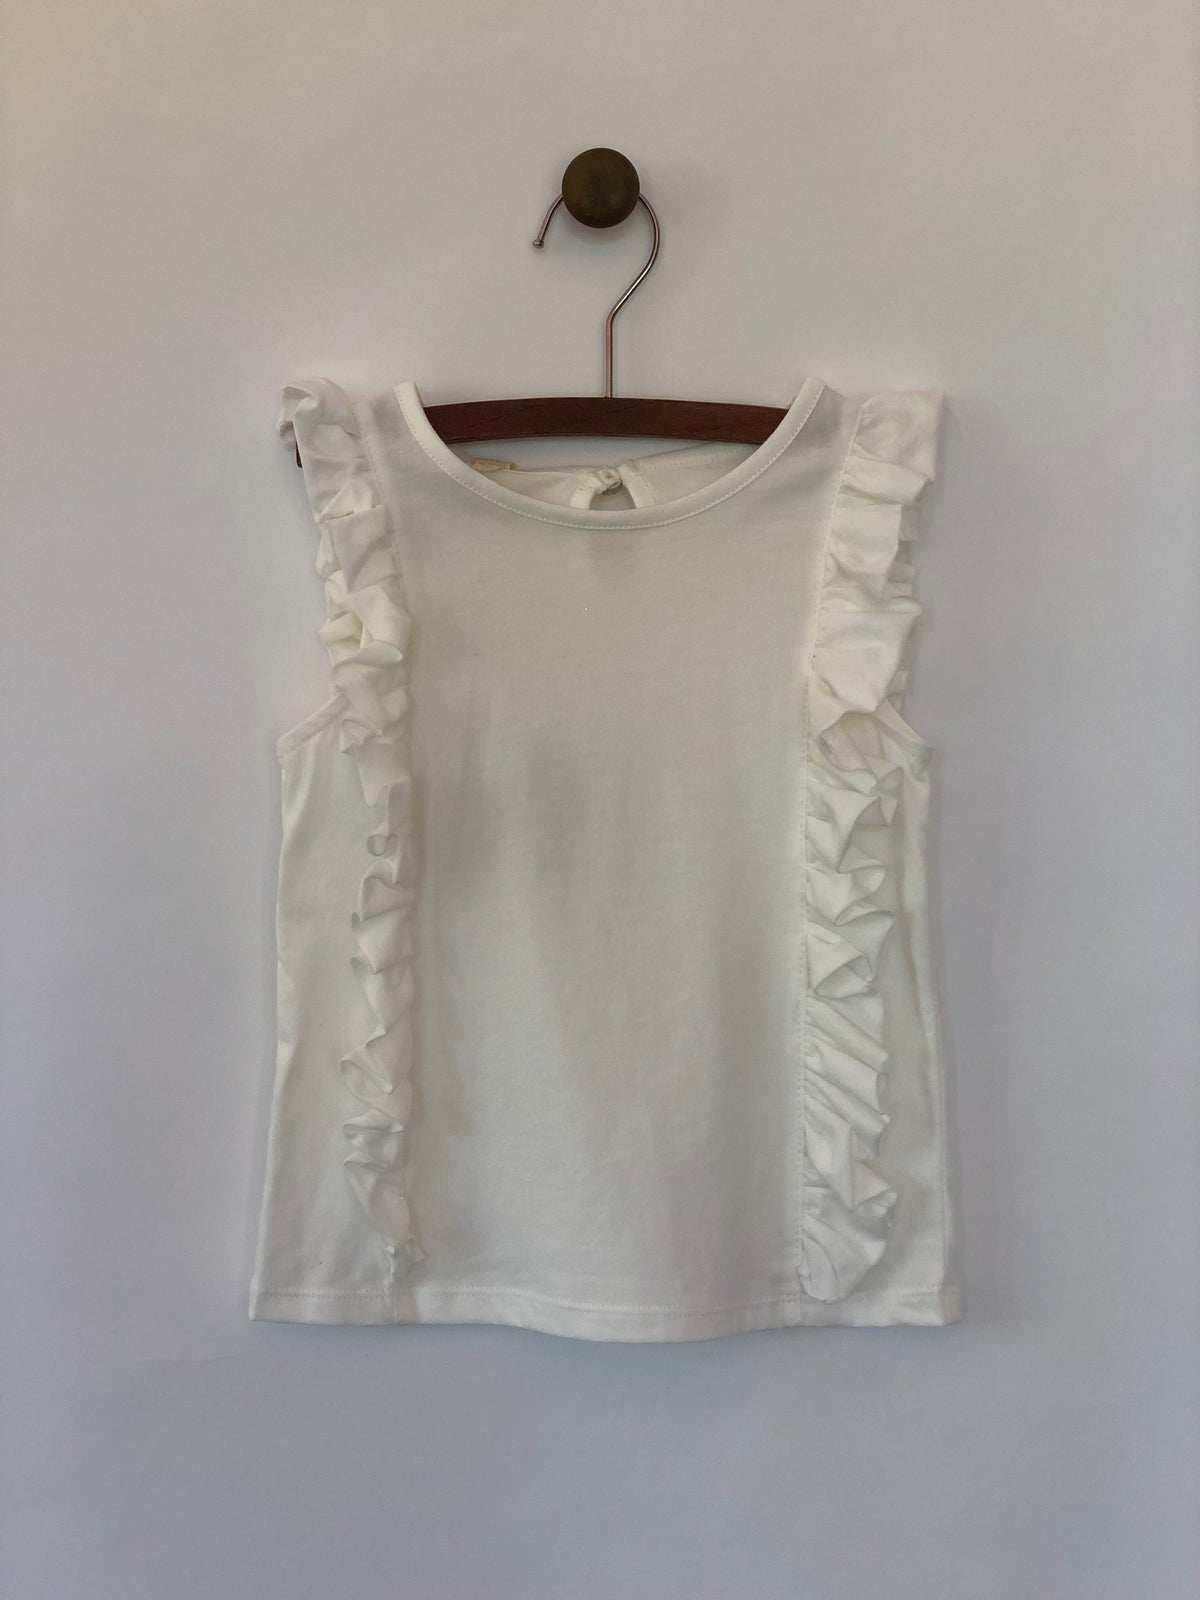 Girls sleeveless ivory tank top with ruffles lining both sides. Shop Vignette for girls.